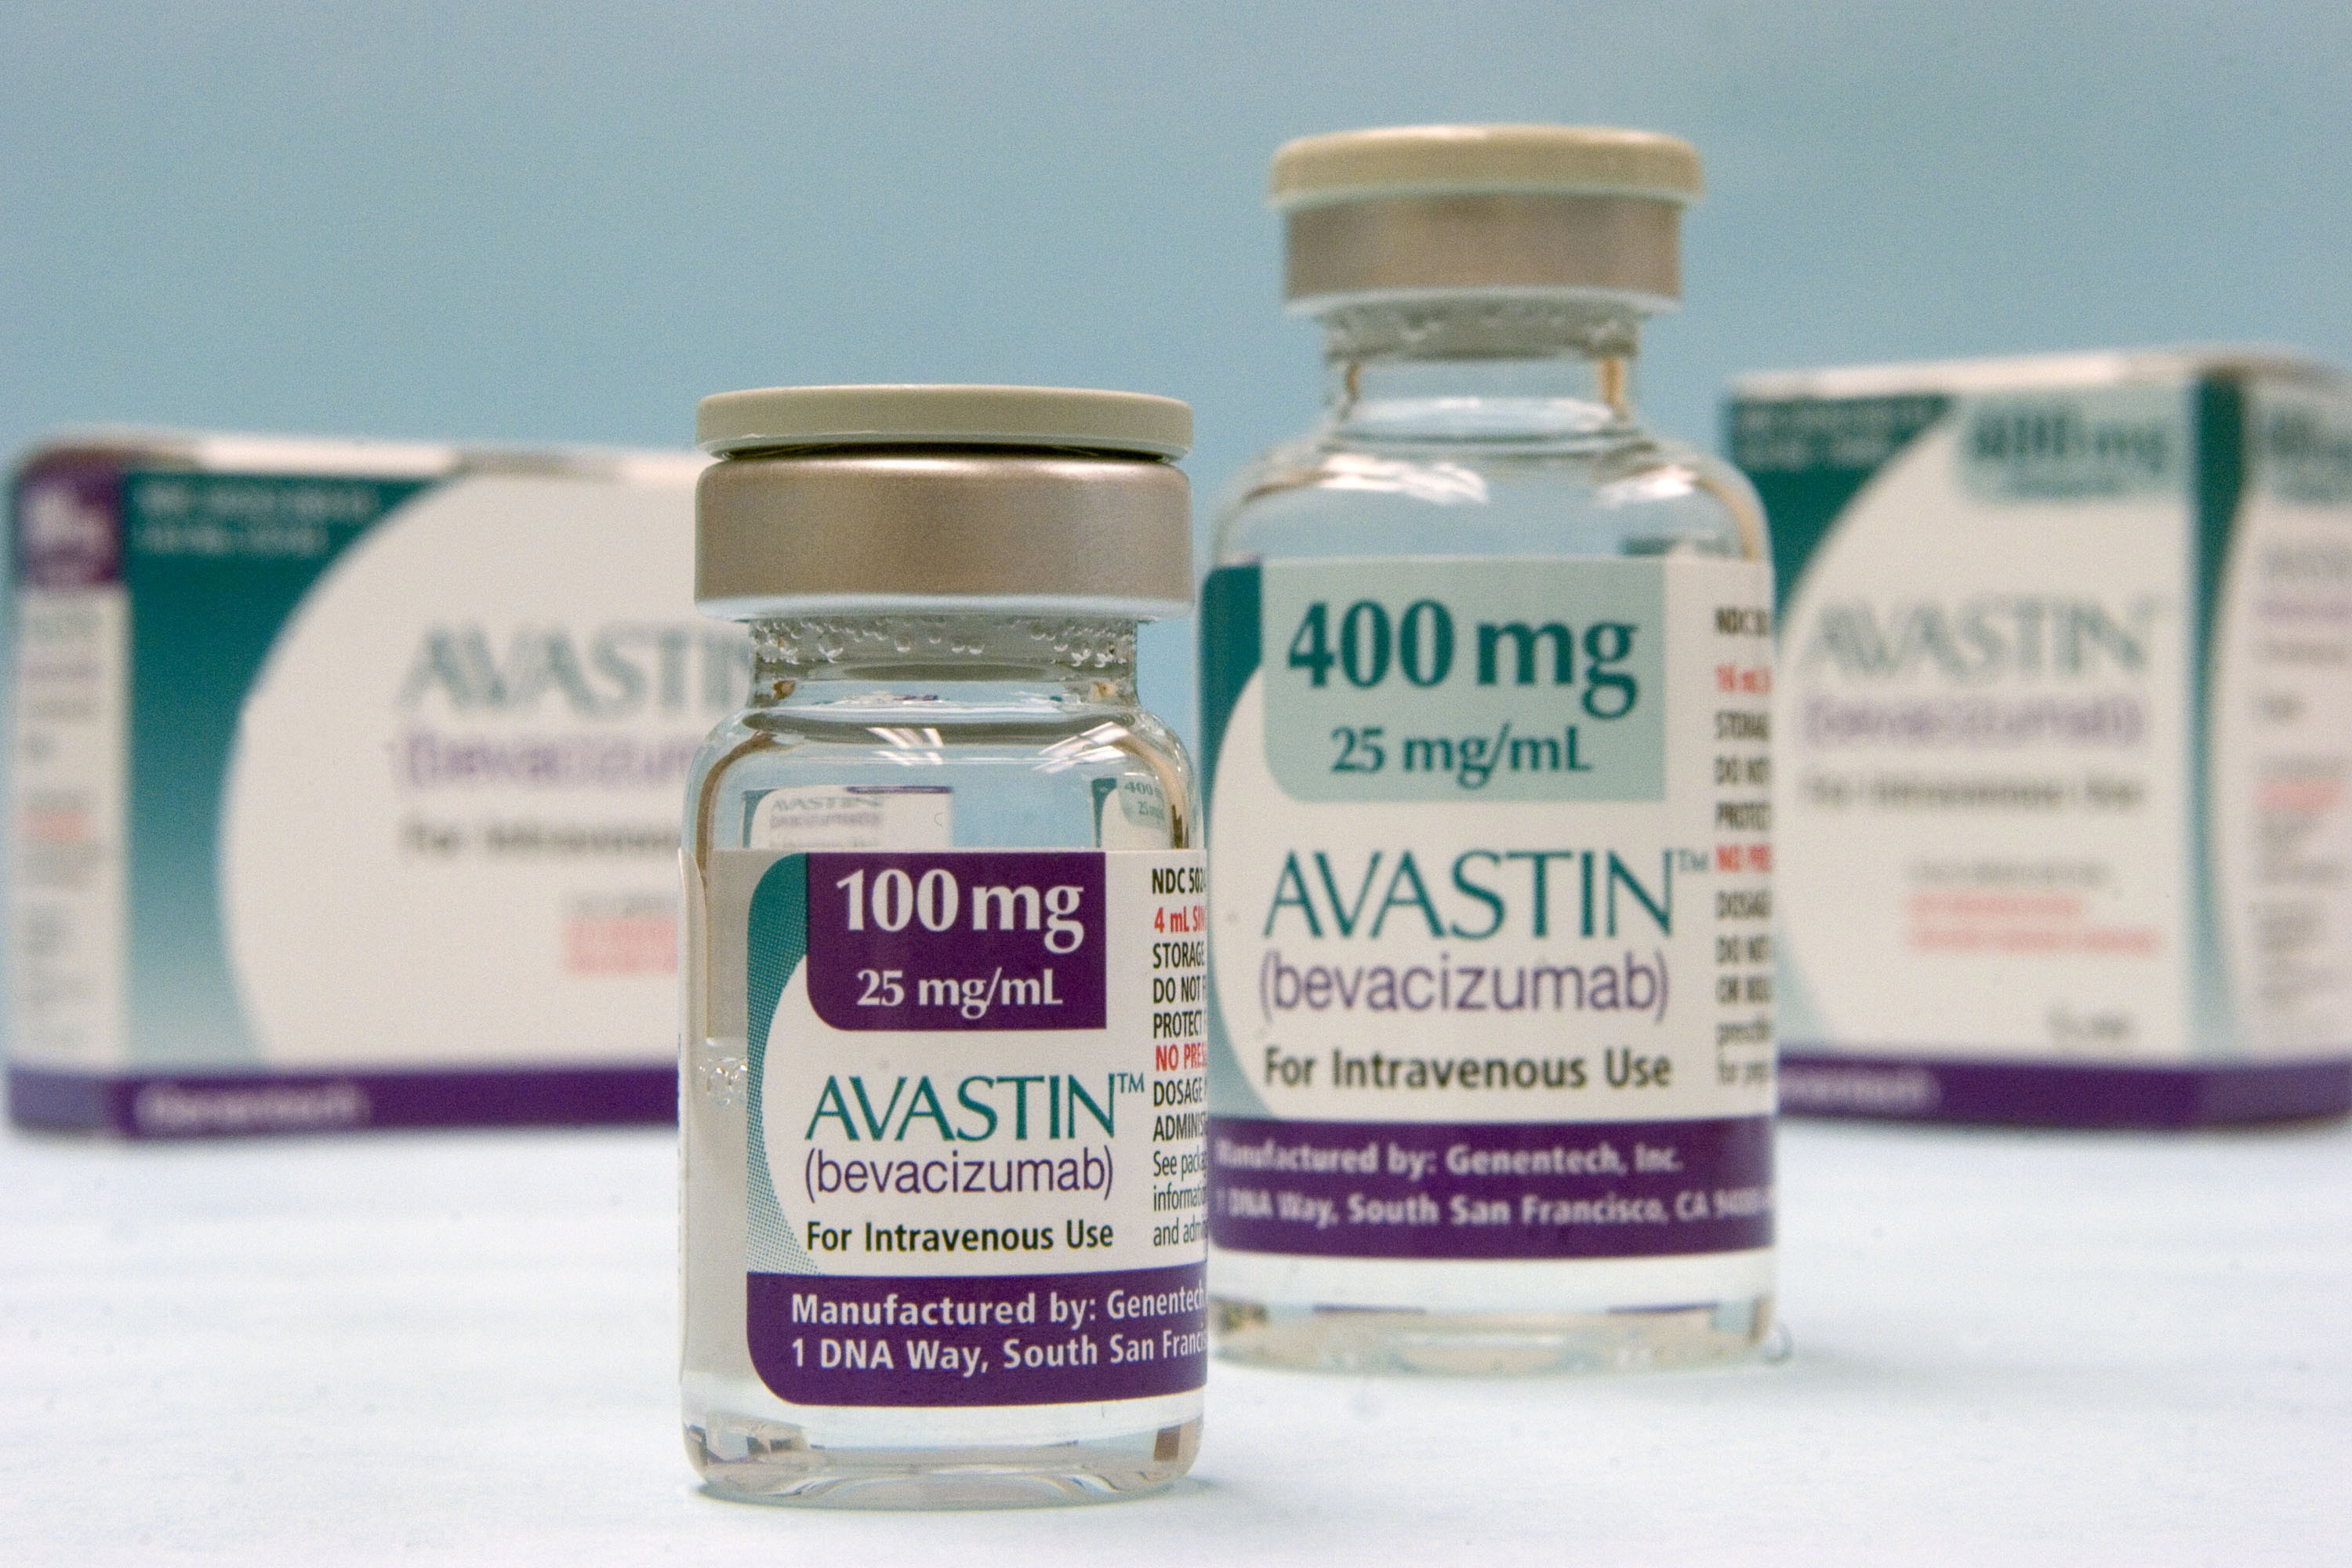 What Is Avastin? - American Academy of Ophthalmology